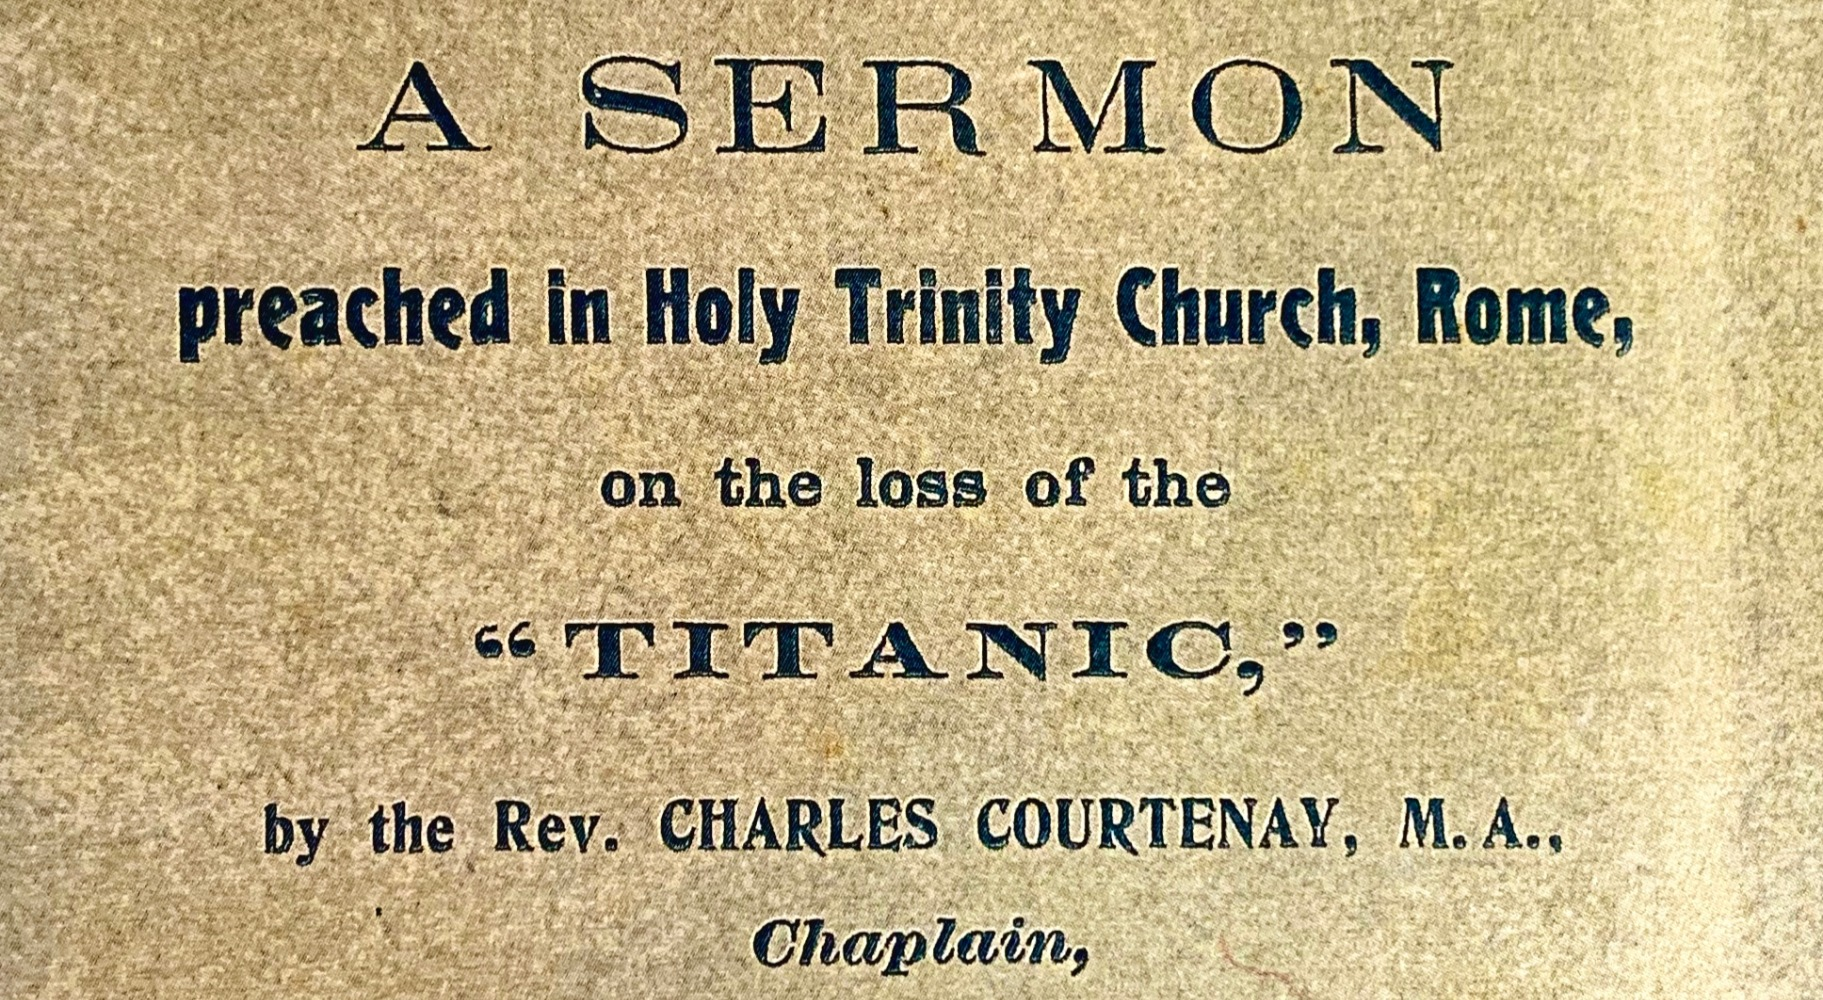 A sermon given at Holy Trinity in 1912.